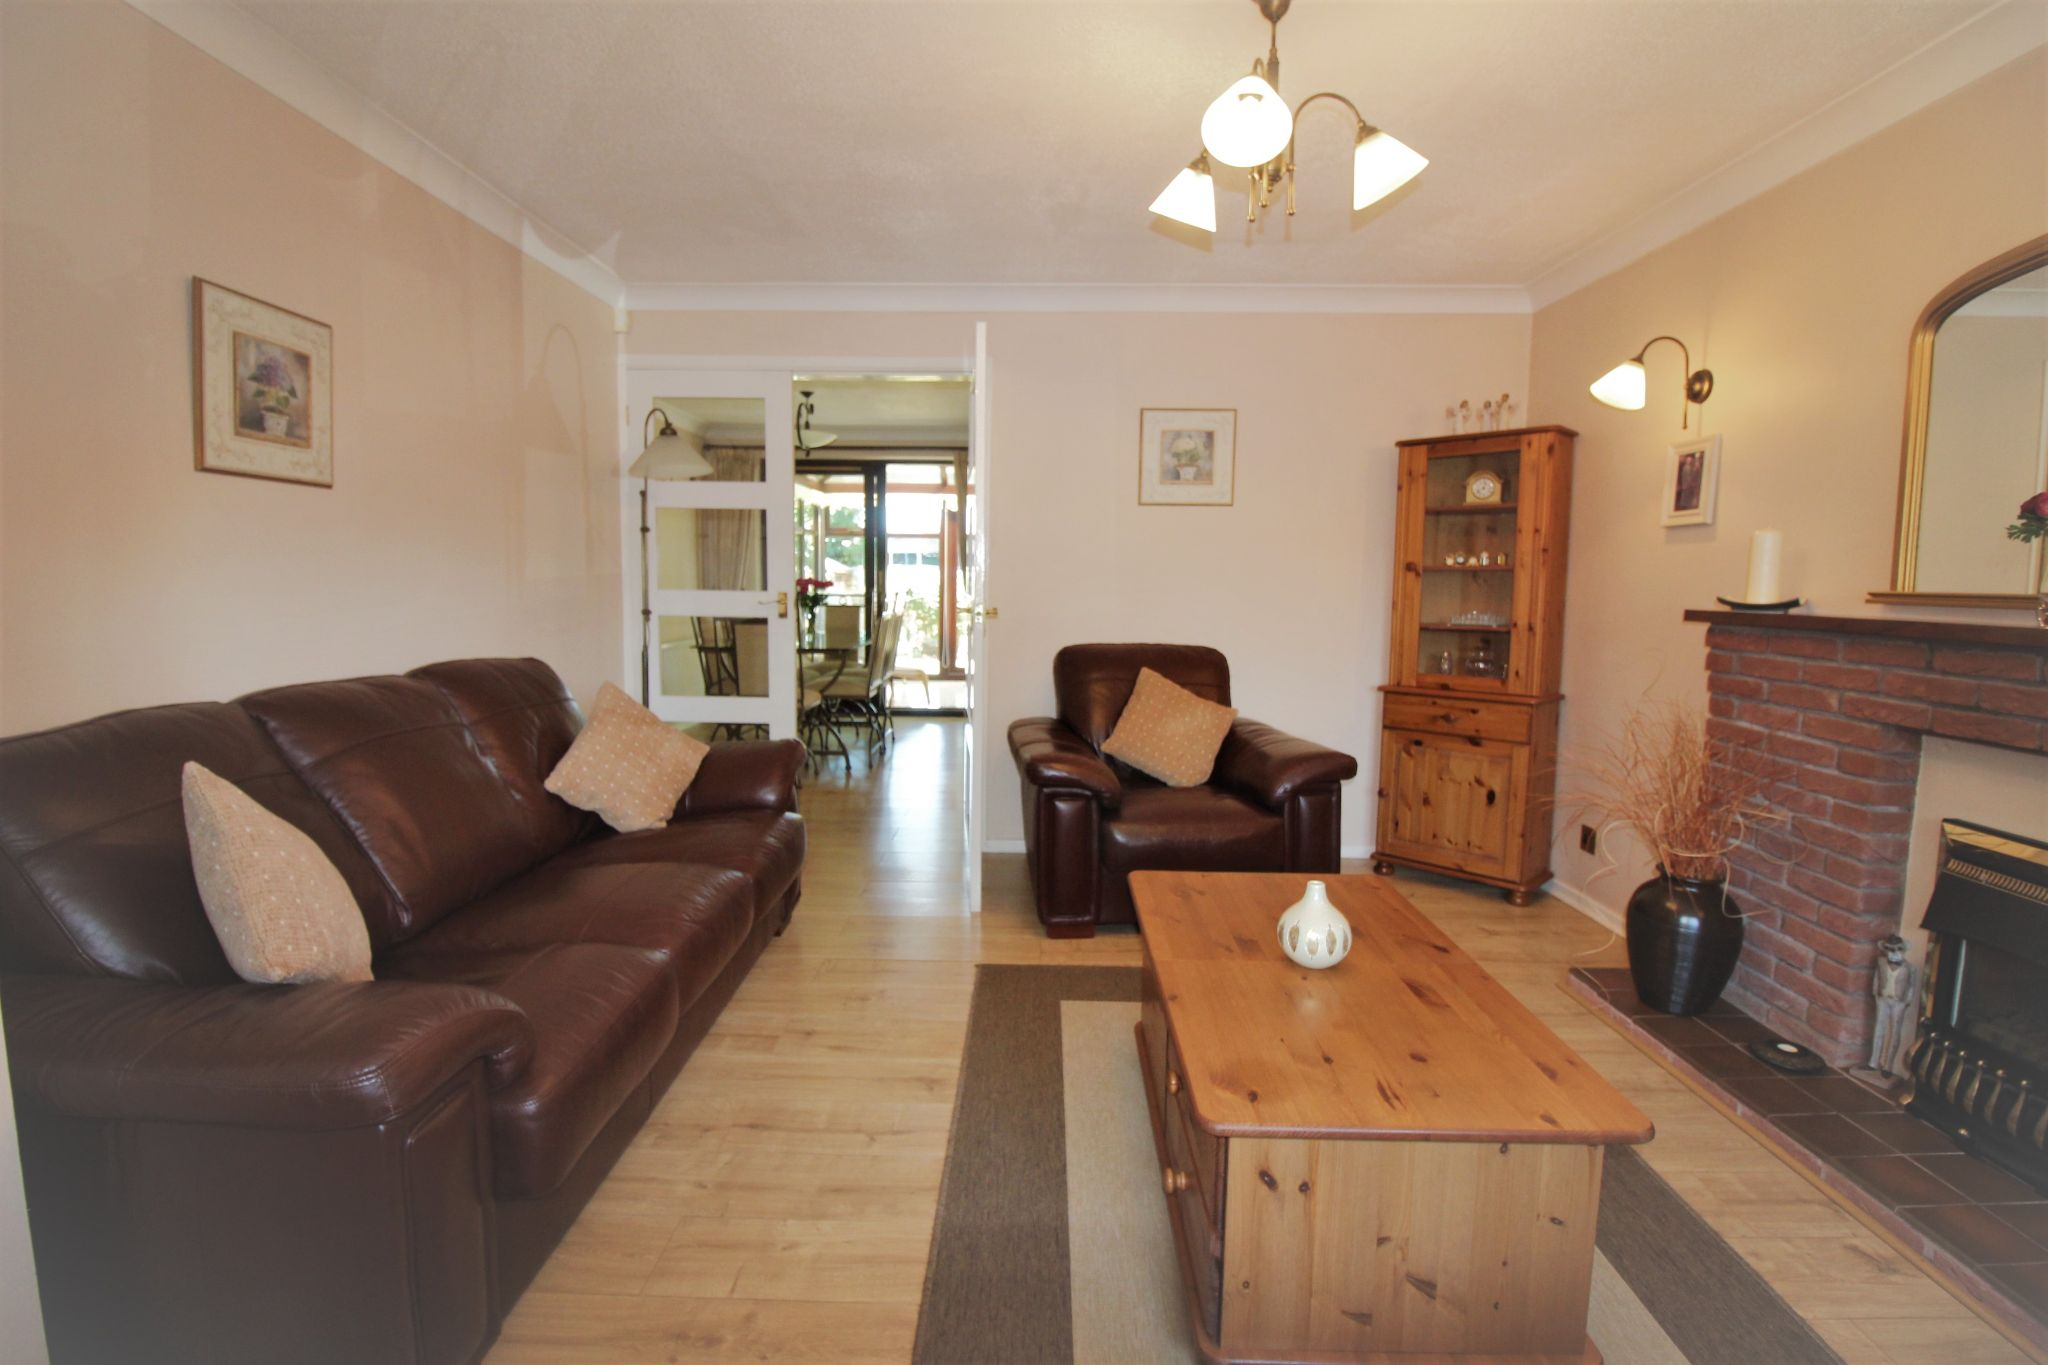 3 bedroom detached house For Sale in Solihull - Property photograph.